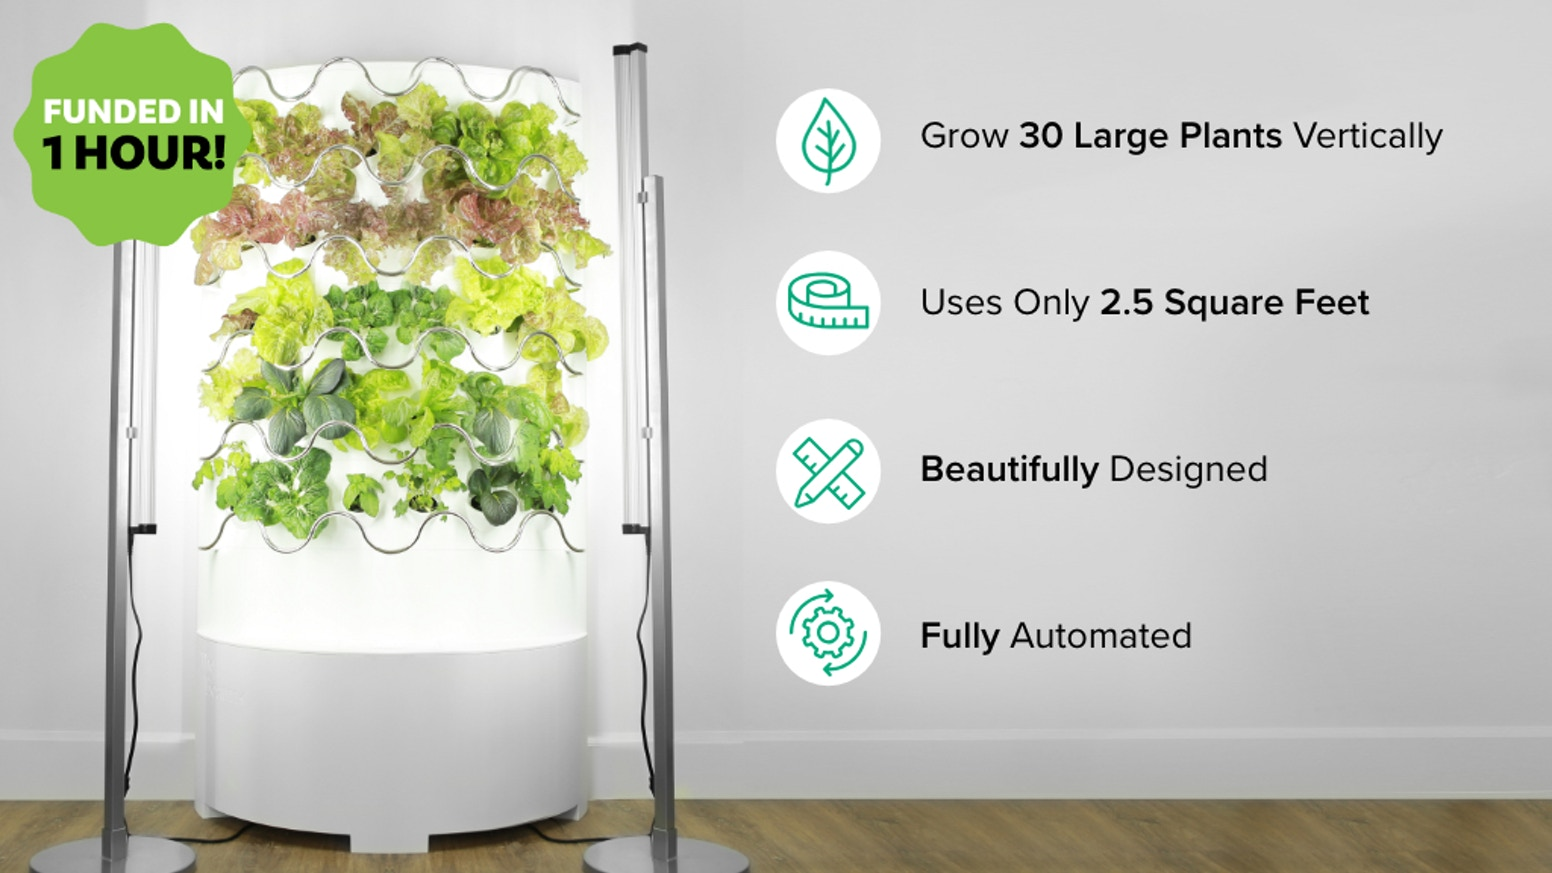 Vertical garden urvan farm technology kickstarter